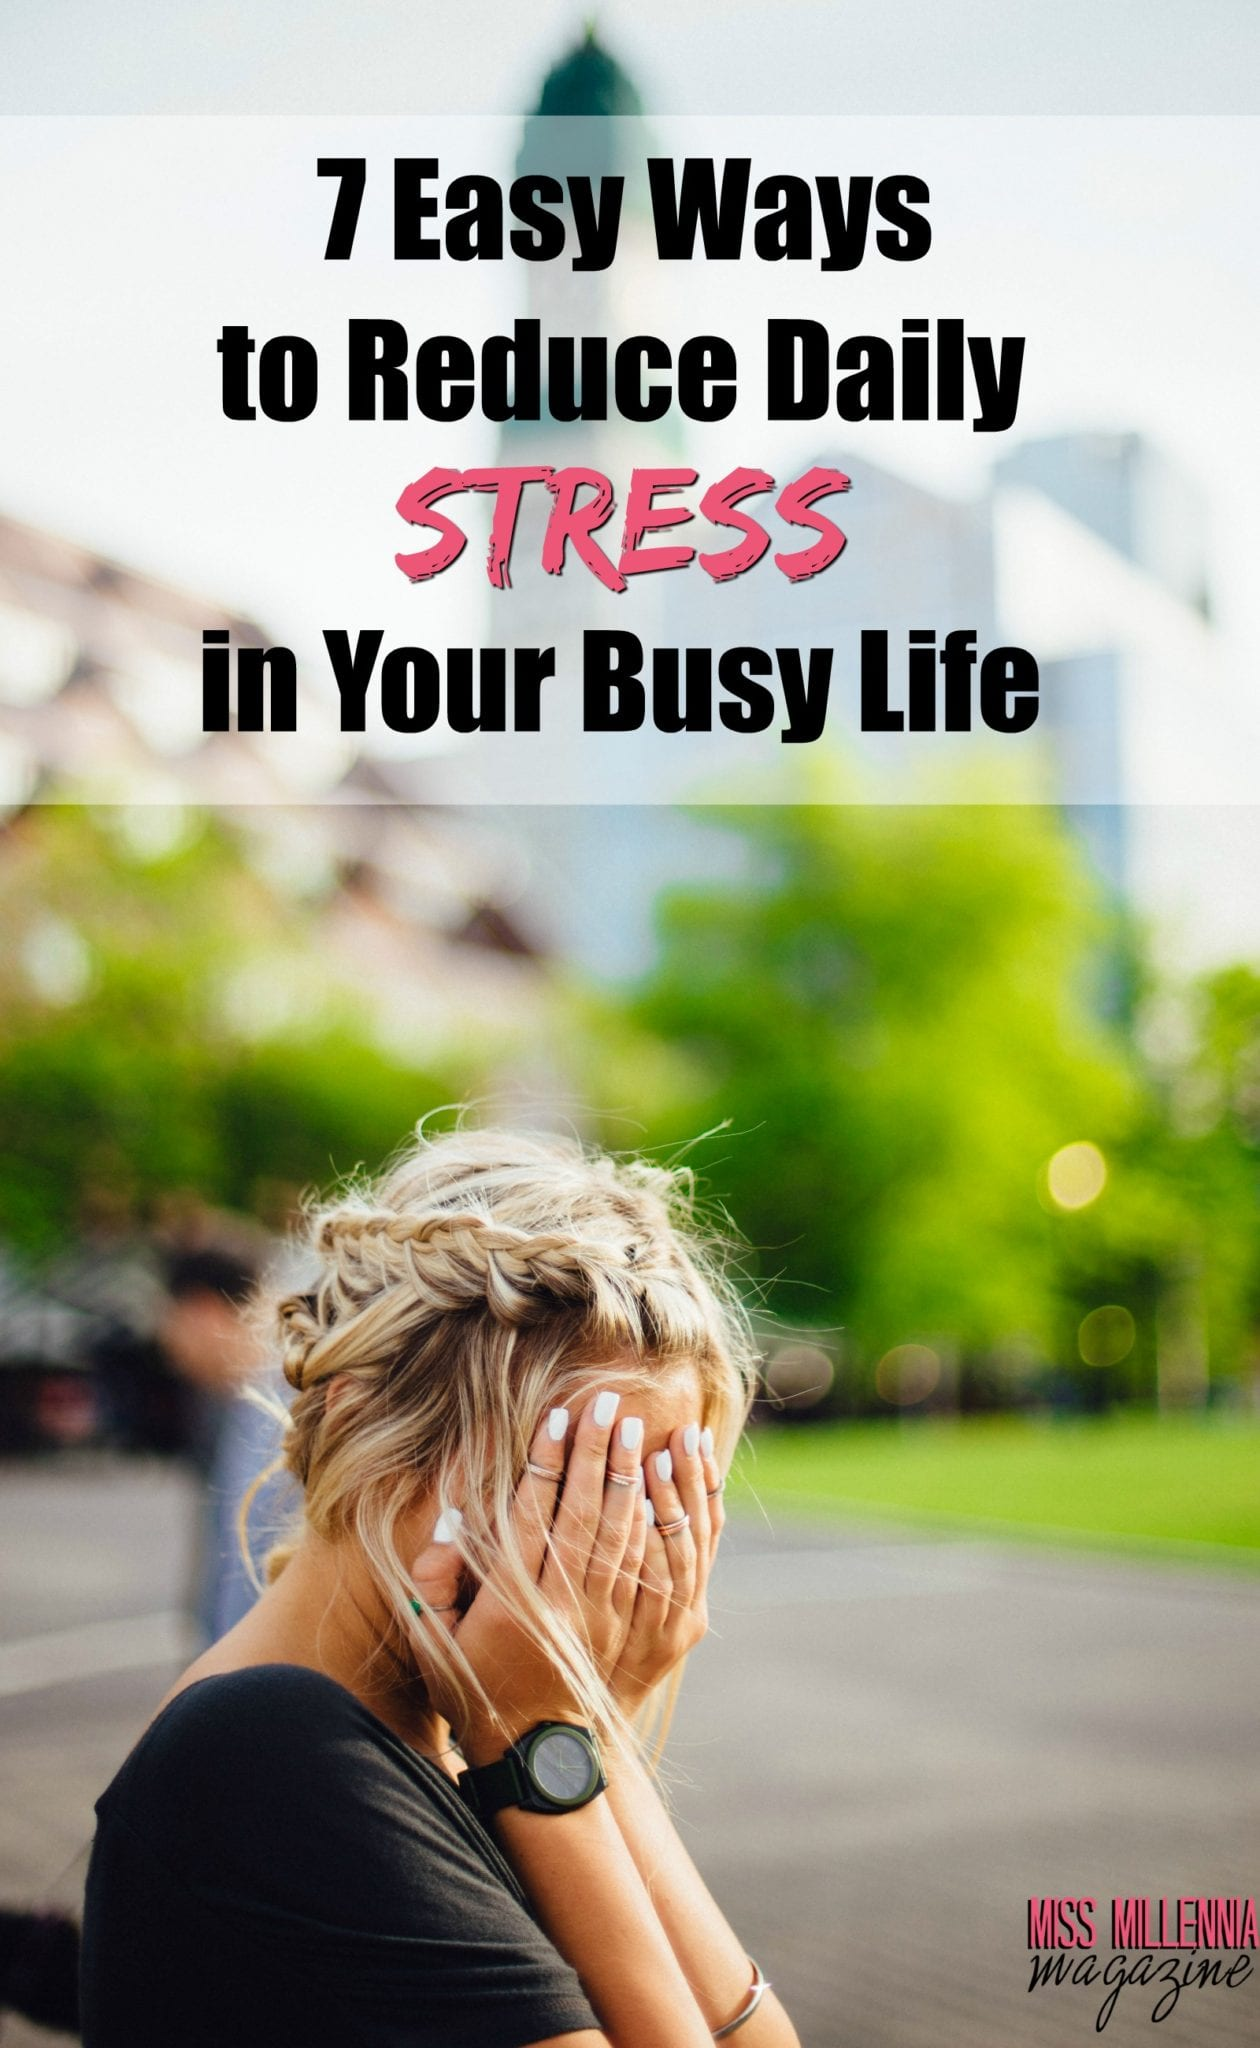 7 Easy Ways to Reduce Daily Stress in Your Busy Life